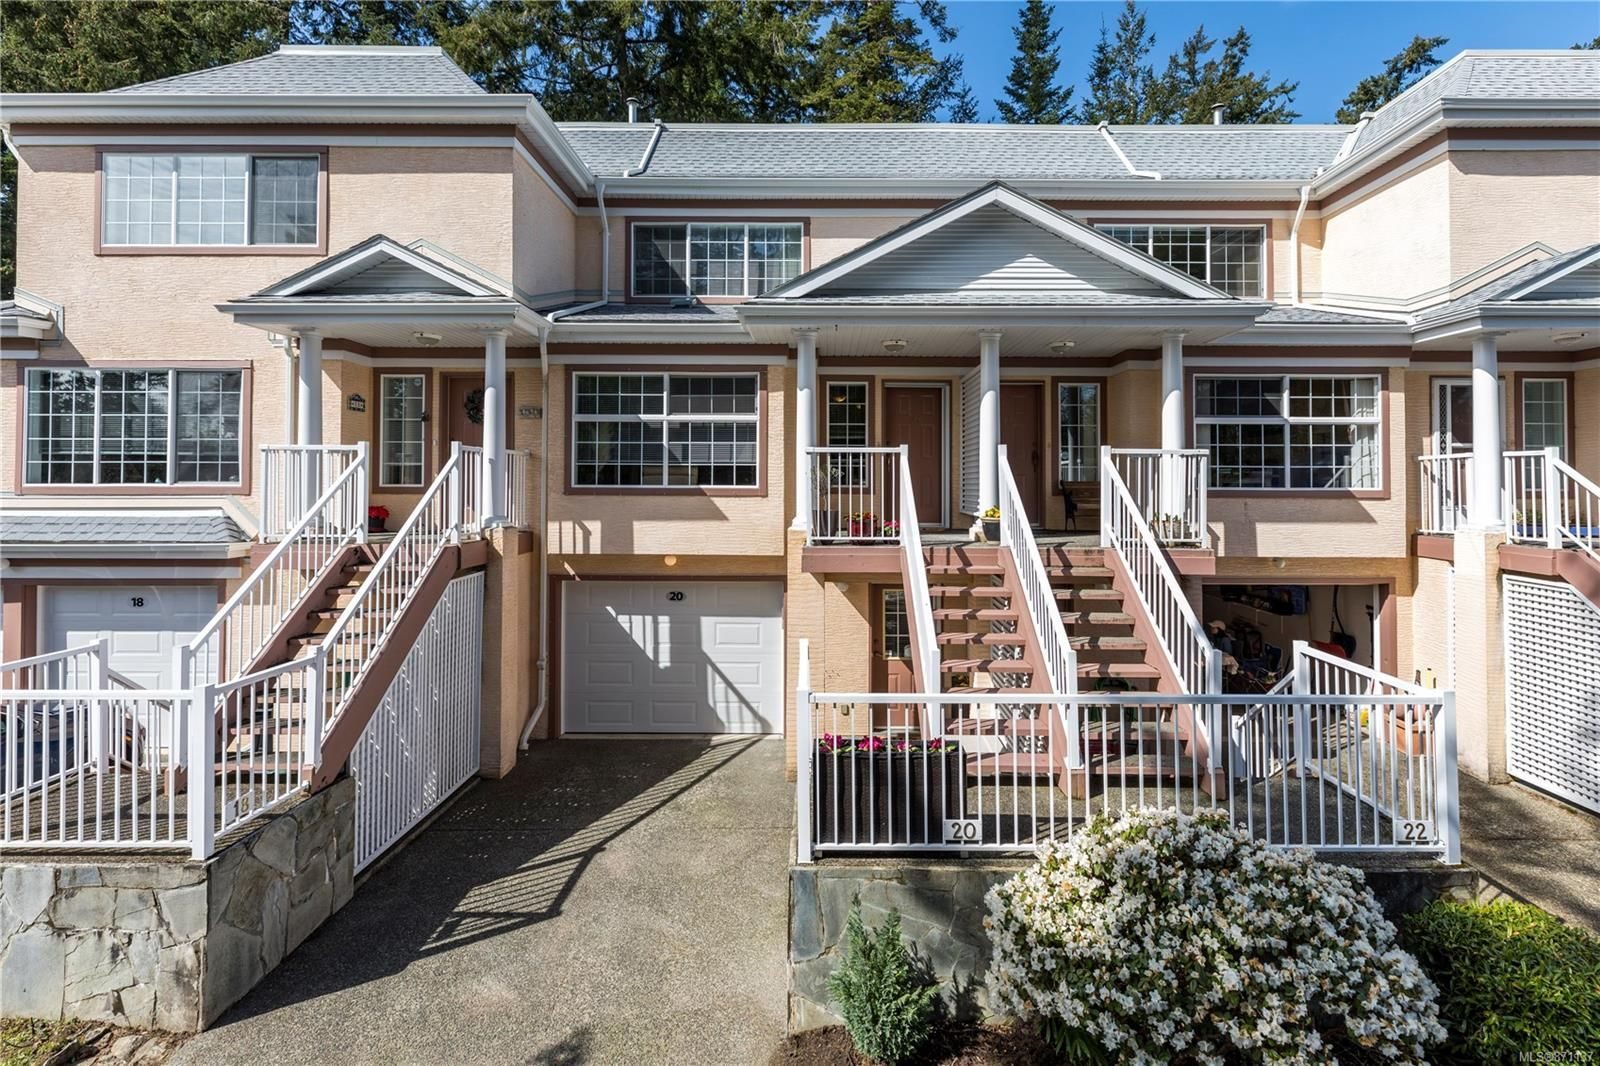 Main Photo: 20 14 Erskine Lane in : VR Hospital Row/Townhouse for sale (View Royal)  : MLS®# 871137